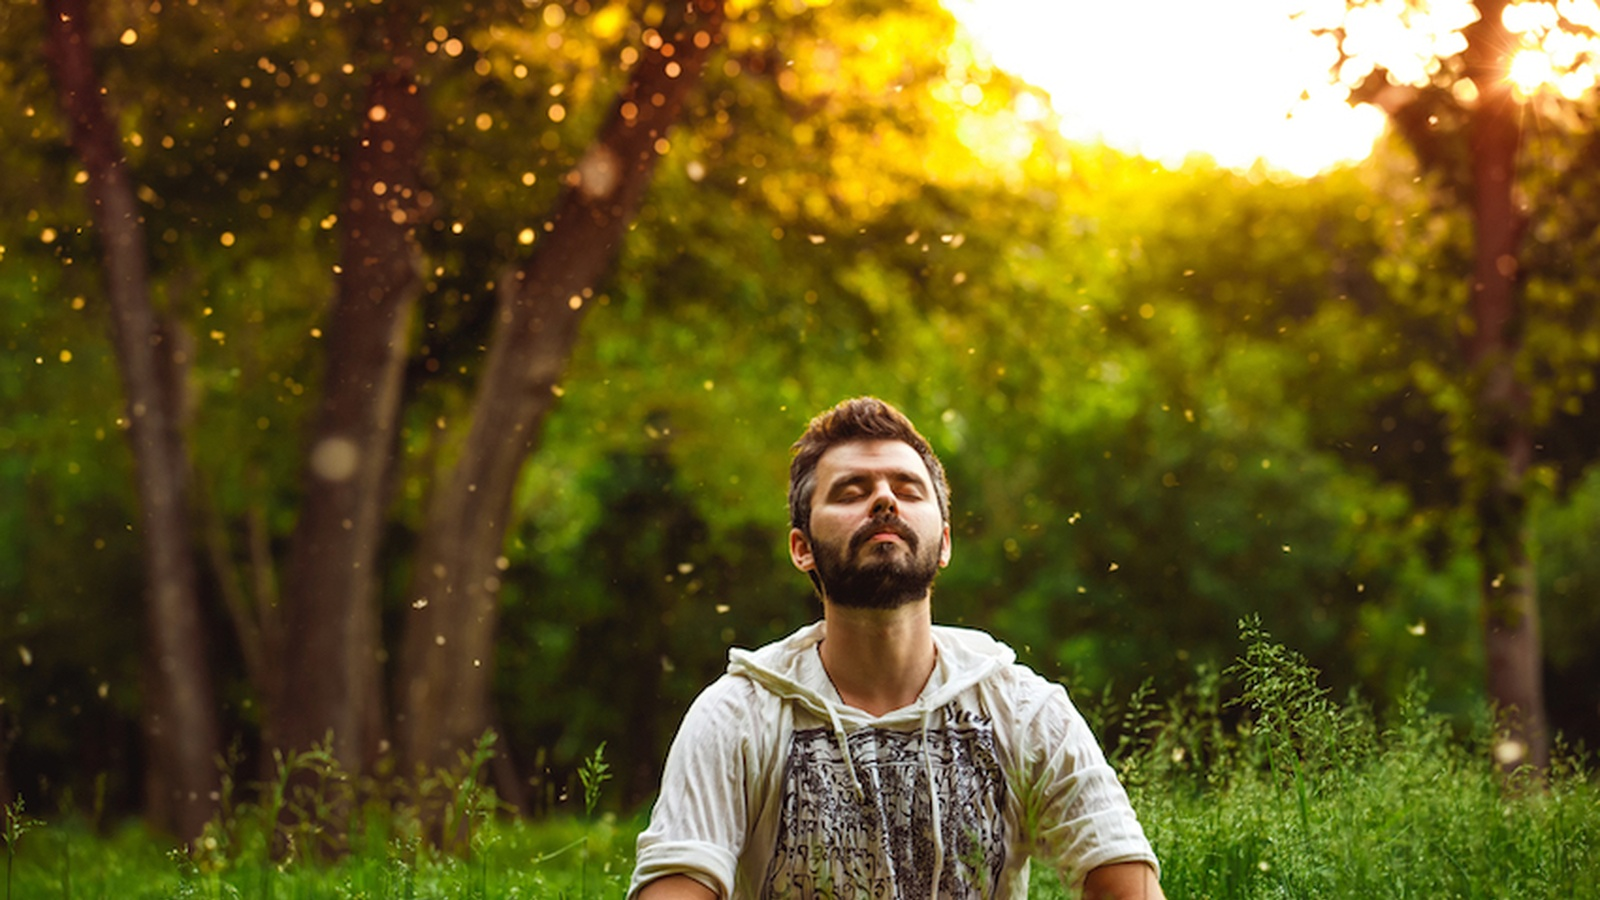 Meditation: 5 Key Factors That Helped Me Greatly